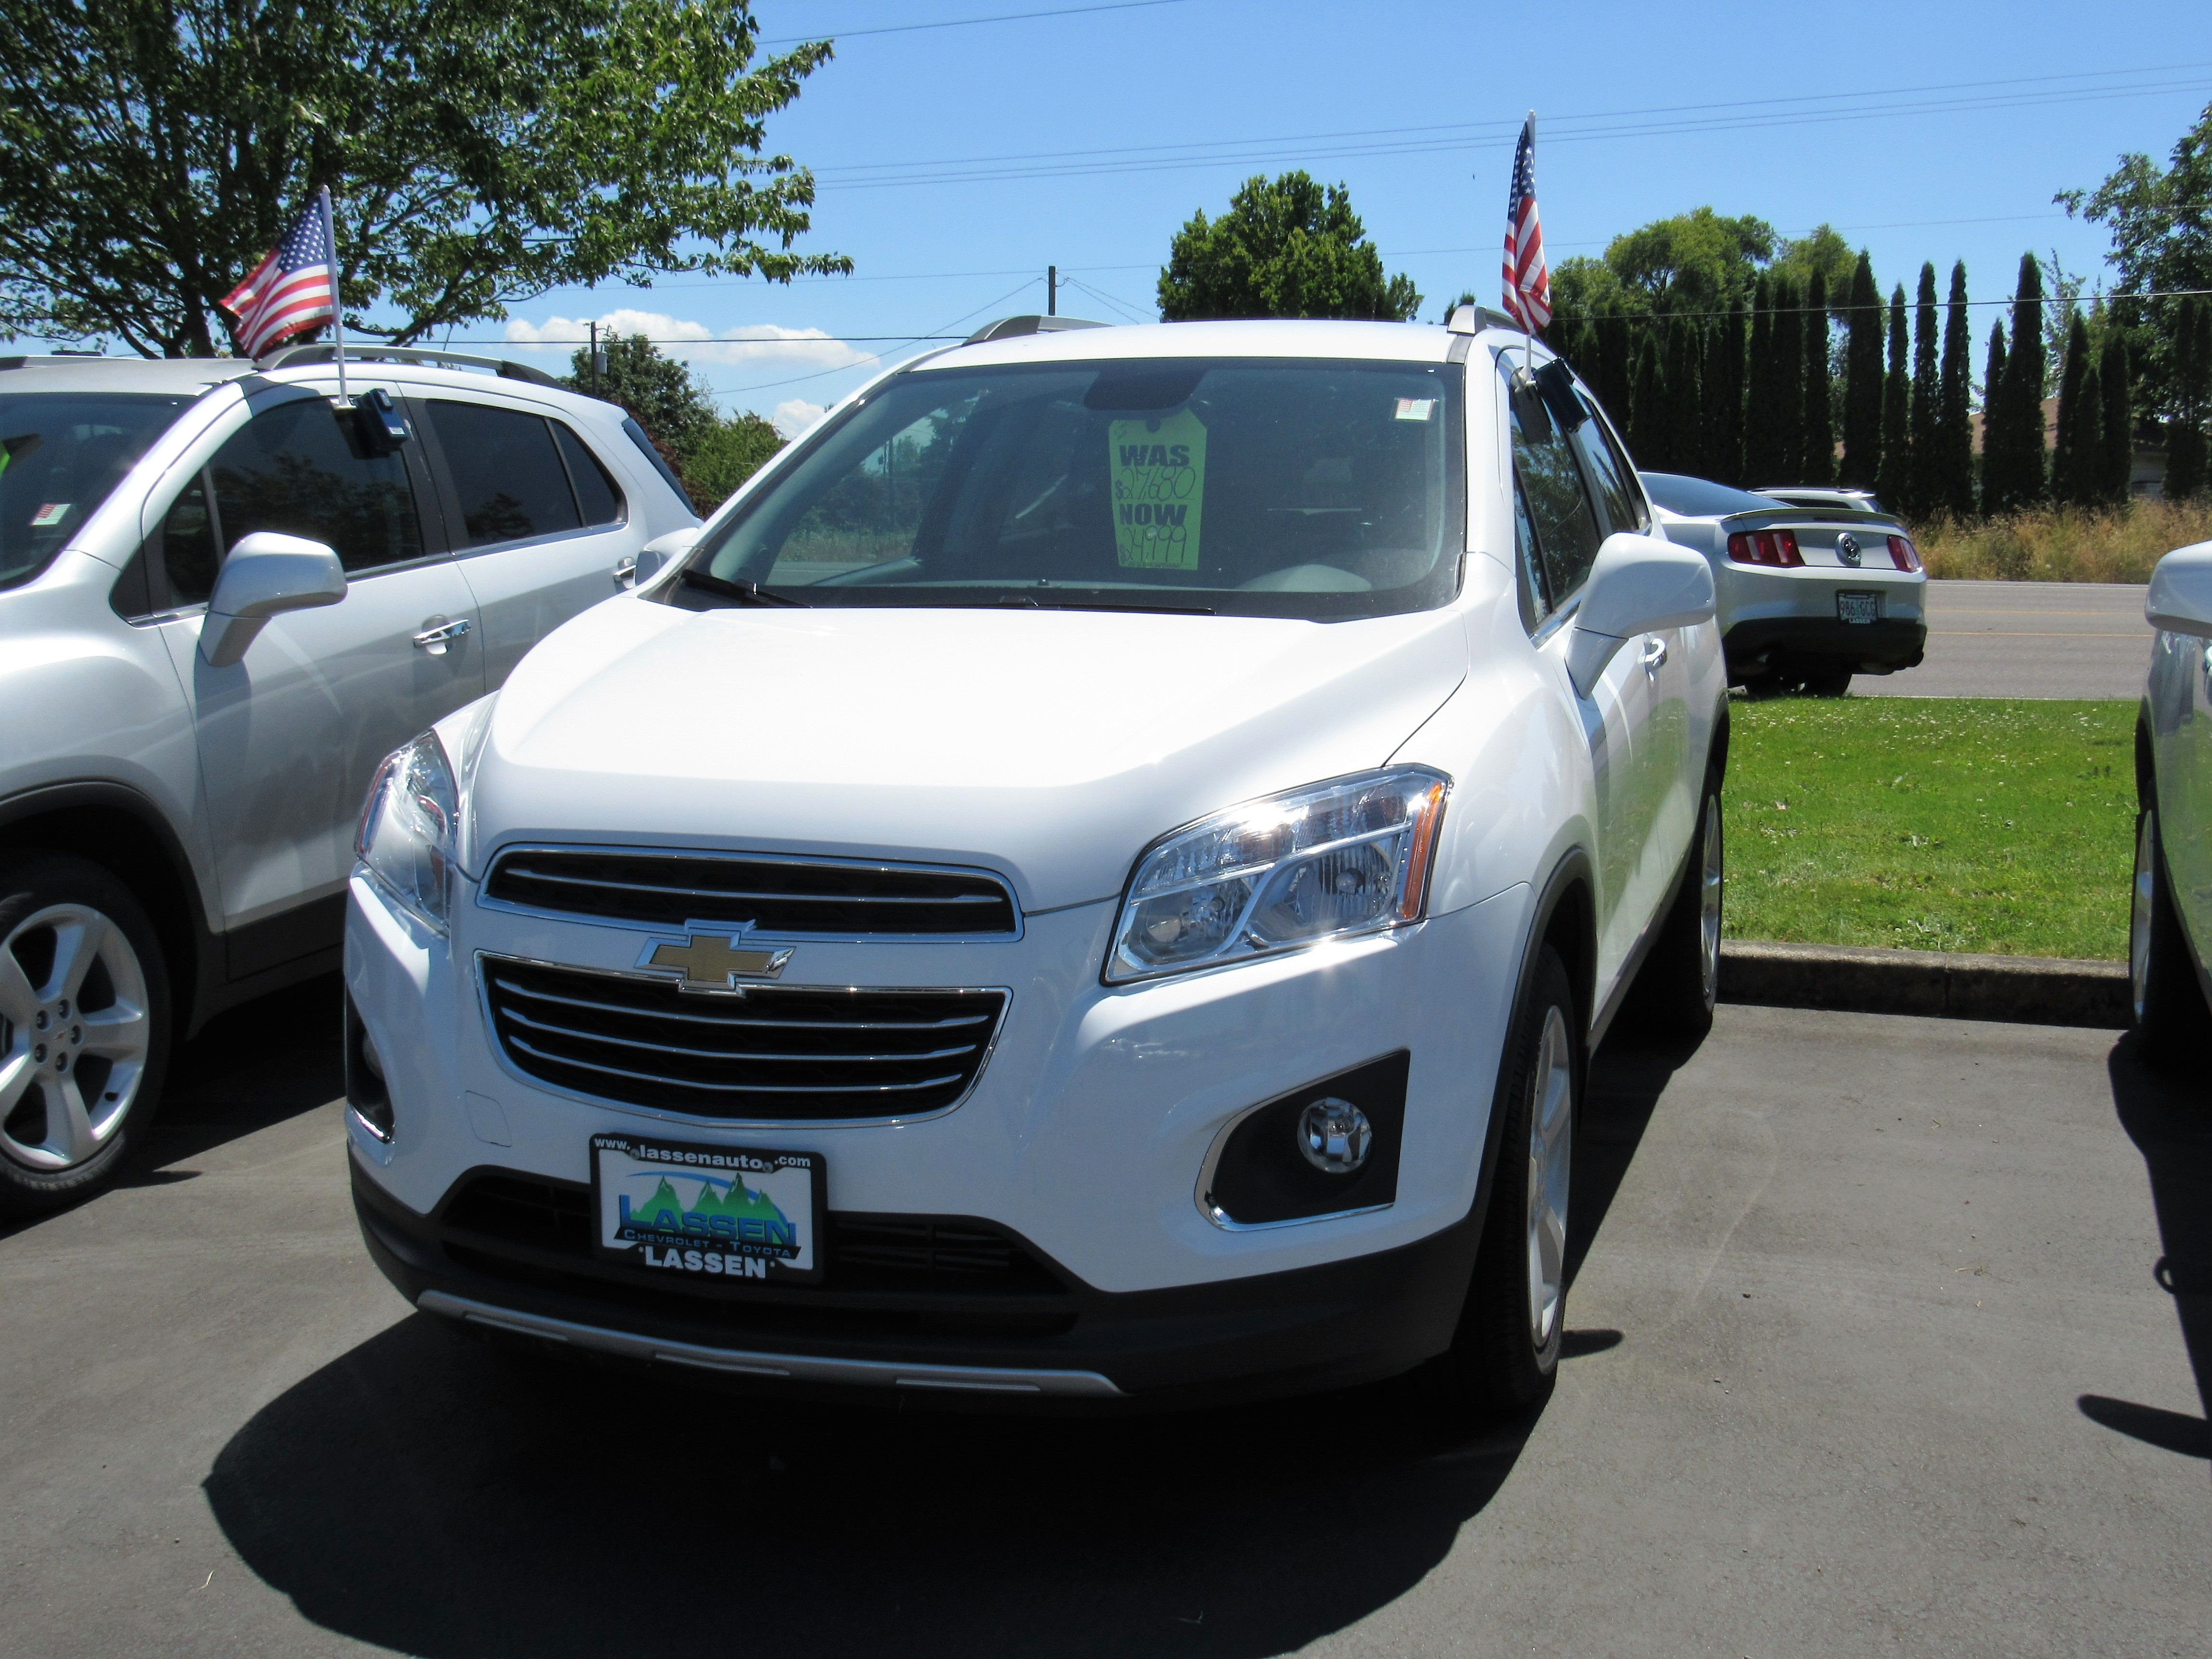 Call For Details 2015 Chevrolet Trax Stock # 5706 Lassen Chevrolet/Toyota  Albany, OR 97322